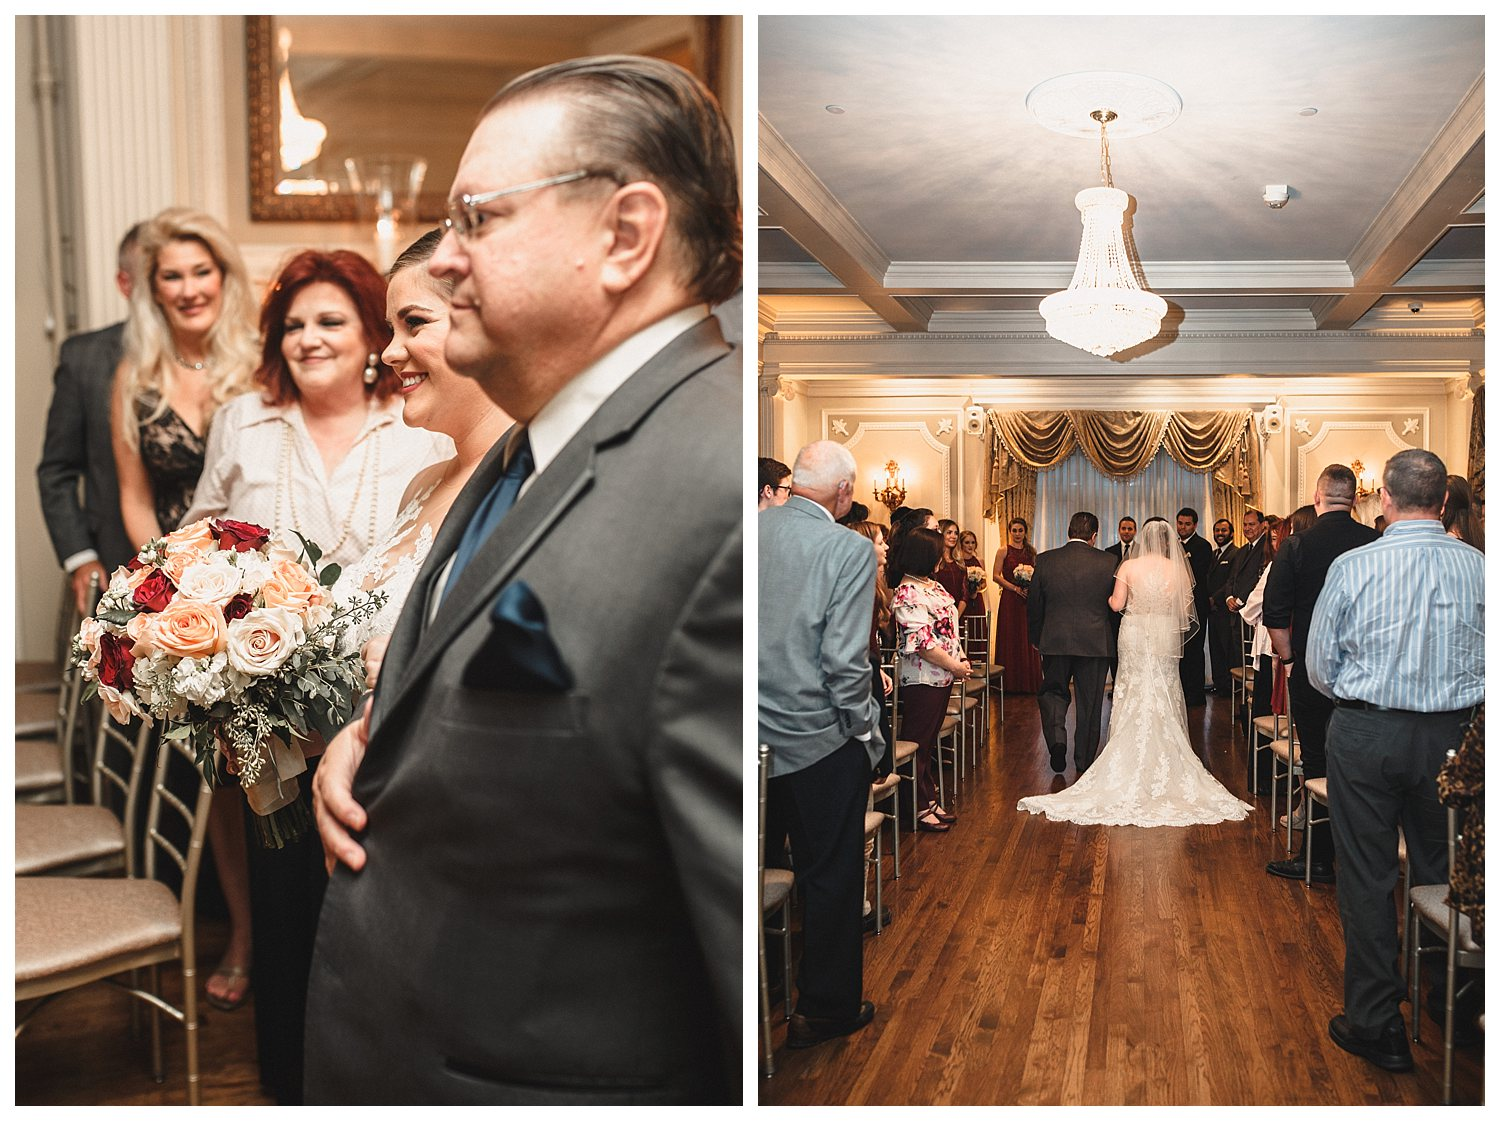 Kelsey_Diane_Photography_Loose_Mansion_Wedding_Photography_Kansas_City_Victor_Lyndsay_0143.jpg